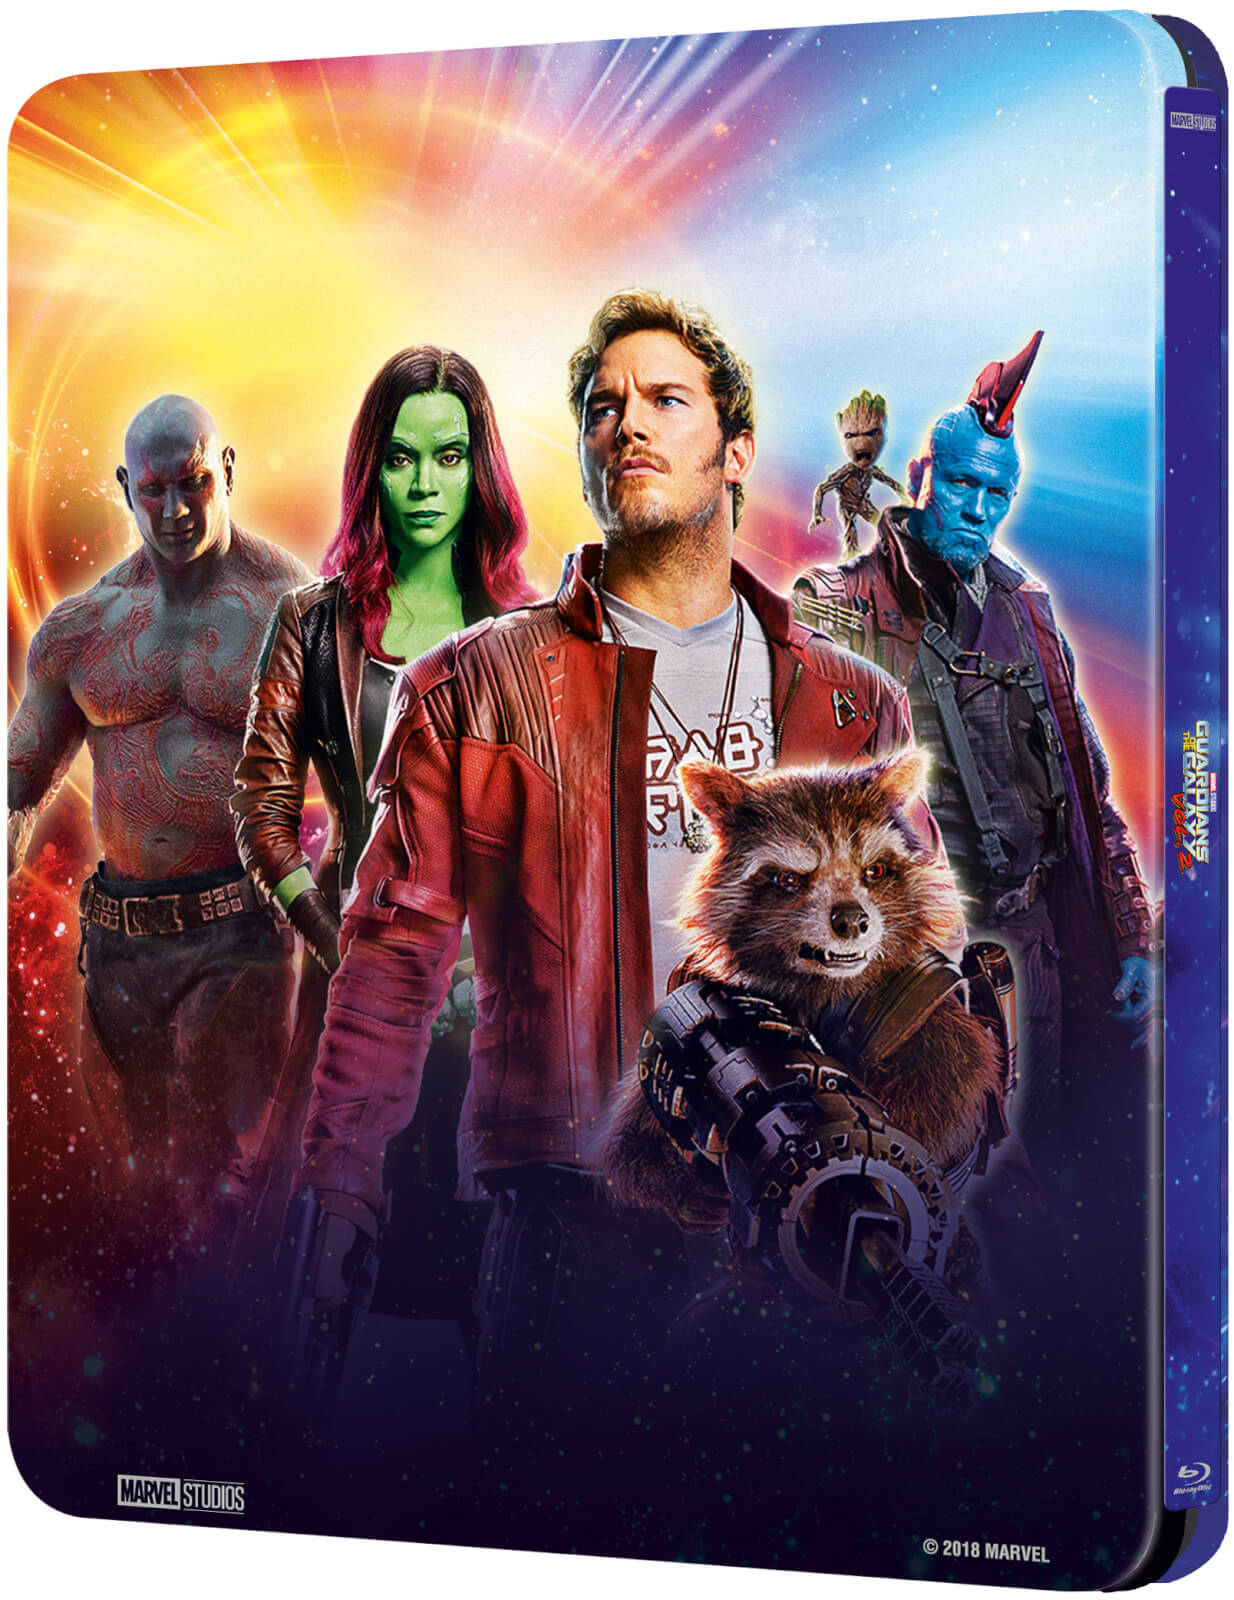 Guardians of the Galaxy Vol. 2 SteelBook back